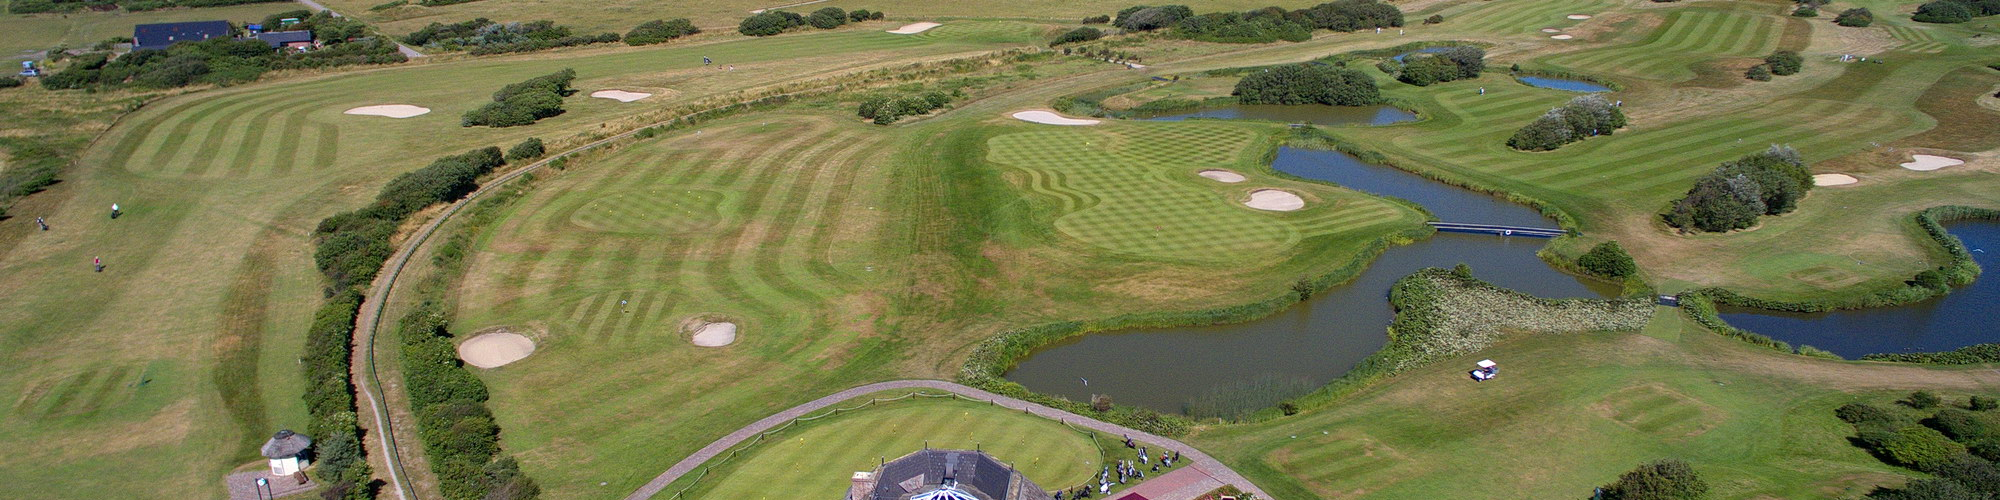 Golfanlage Golf-Club Sylt